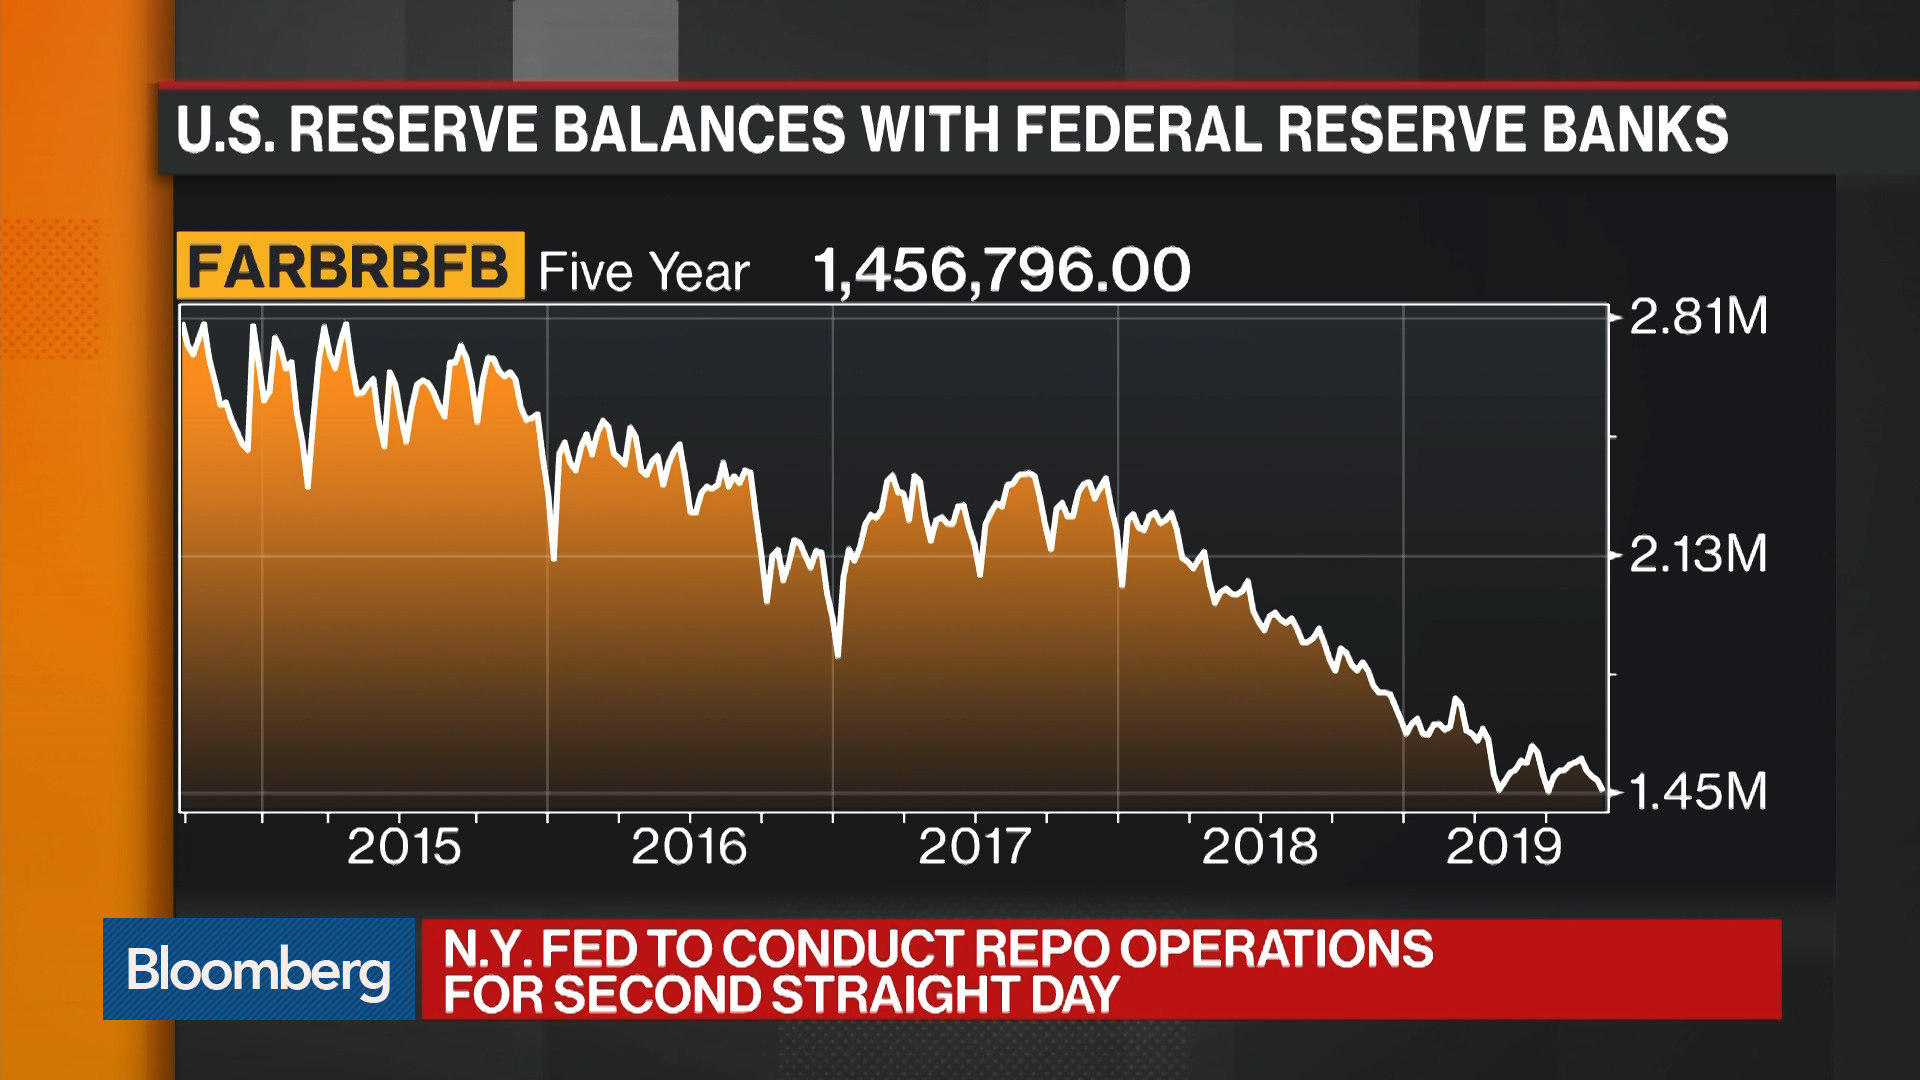 NY Fed Will Conduct Repo Operations For Second Straight Day